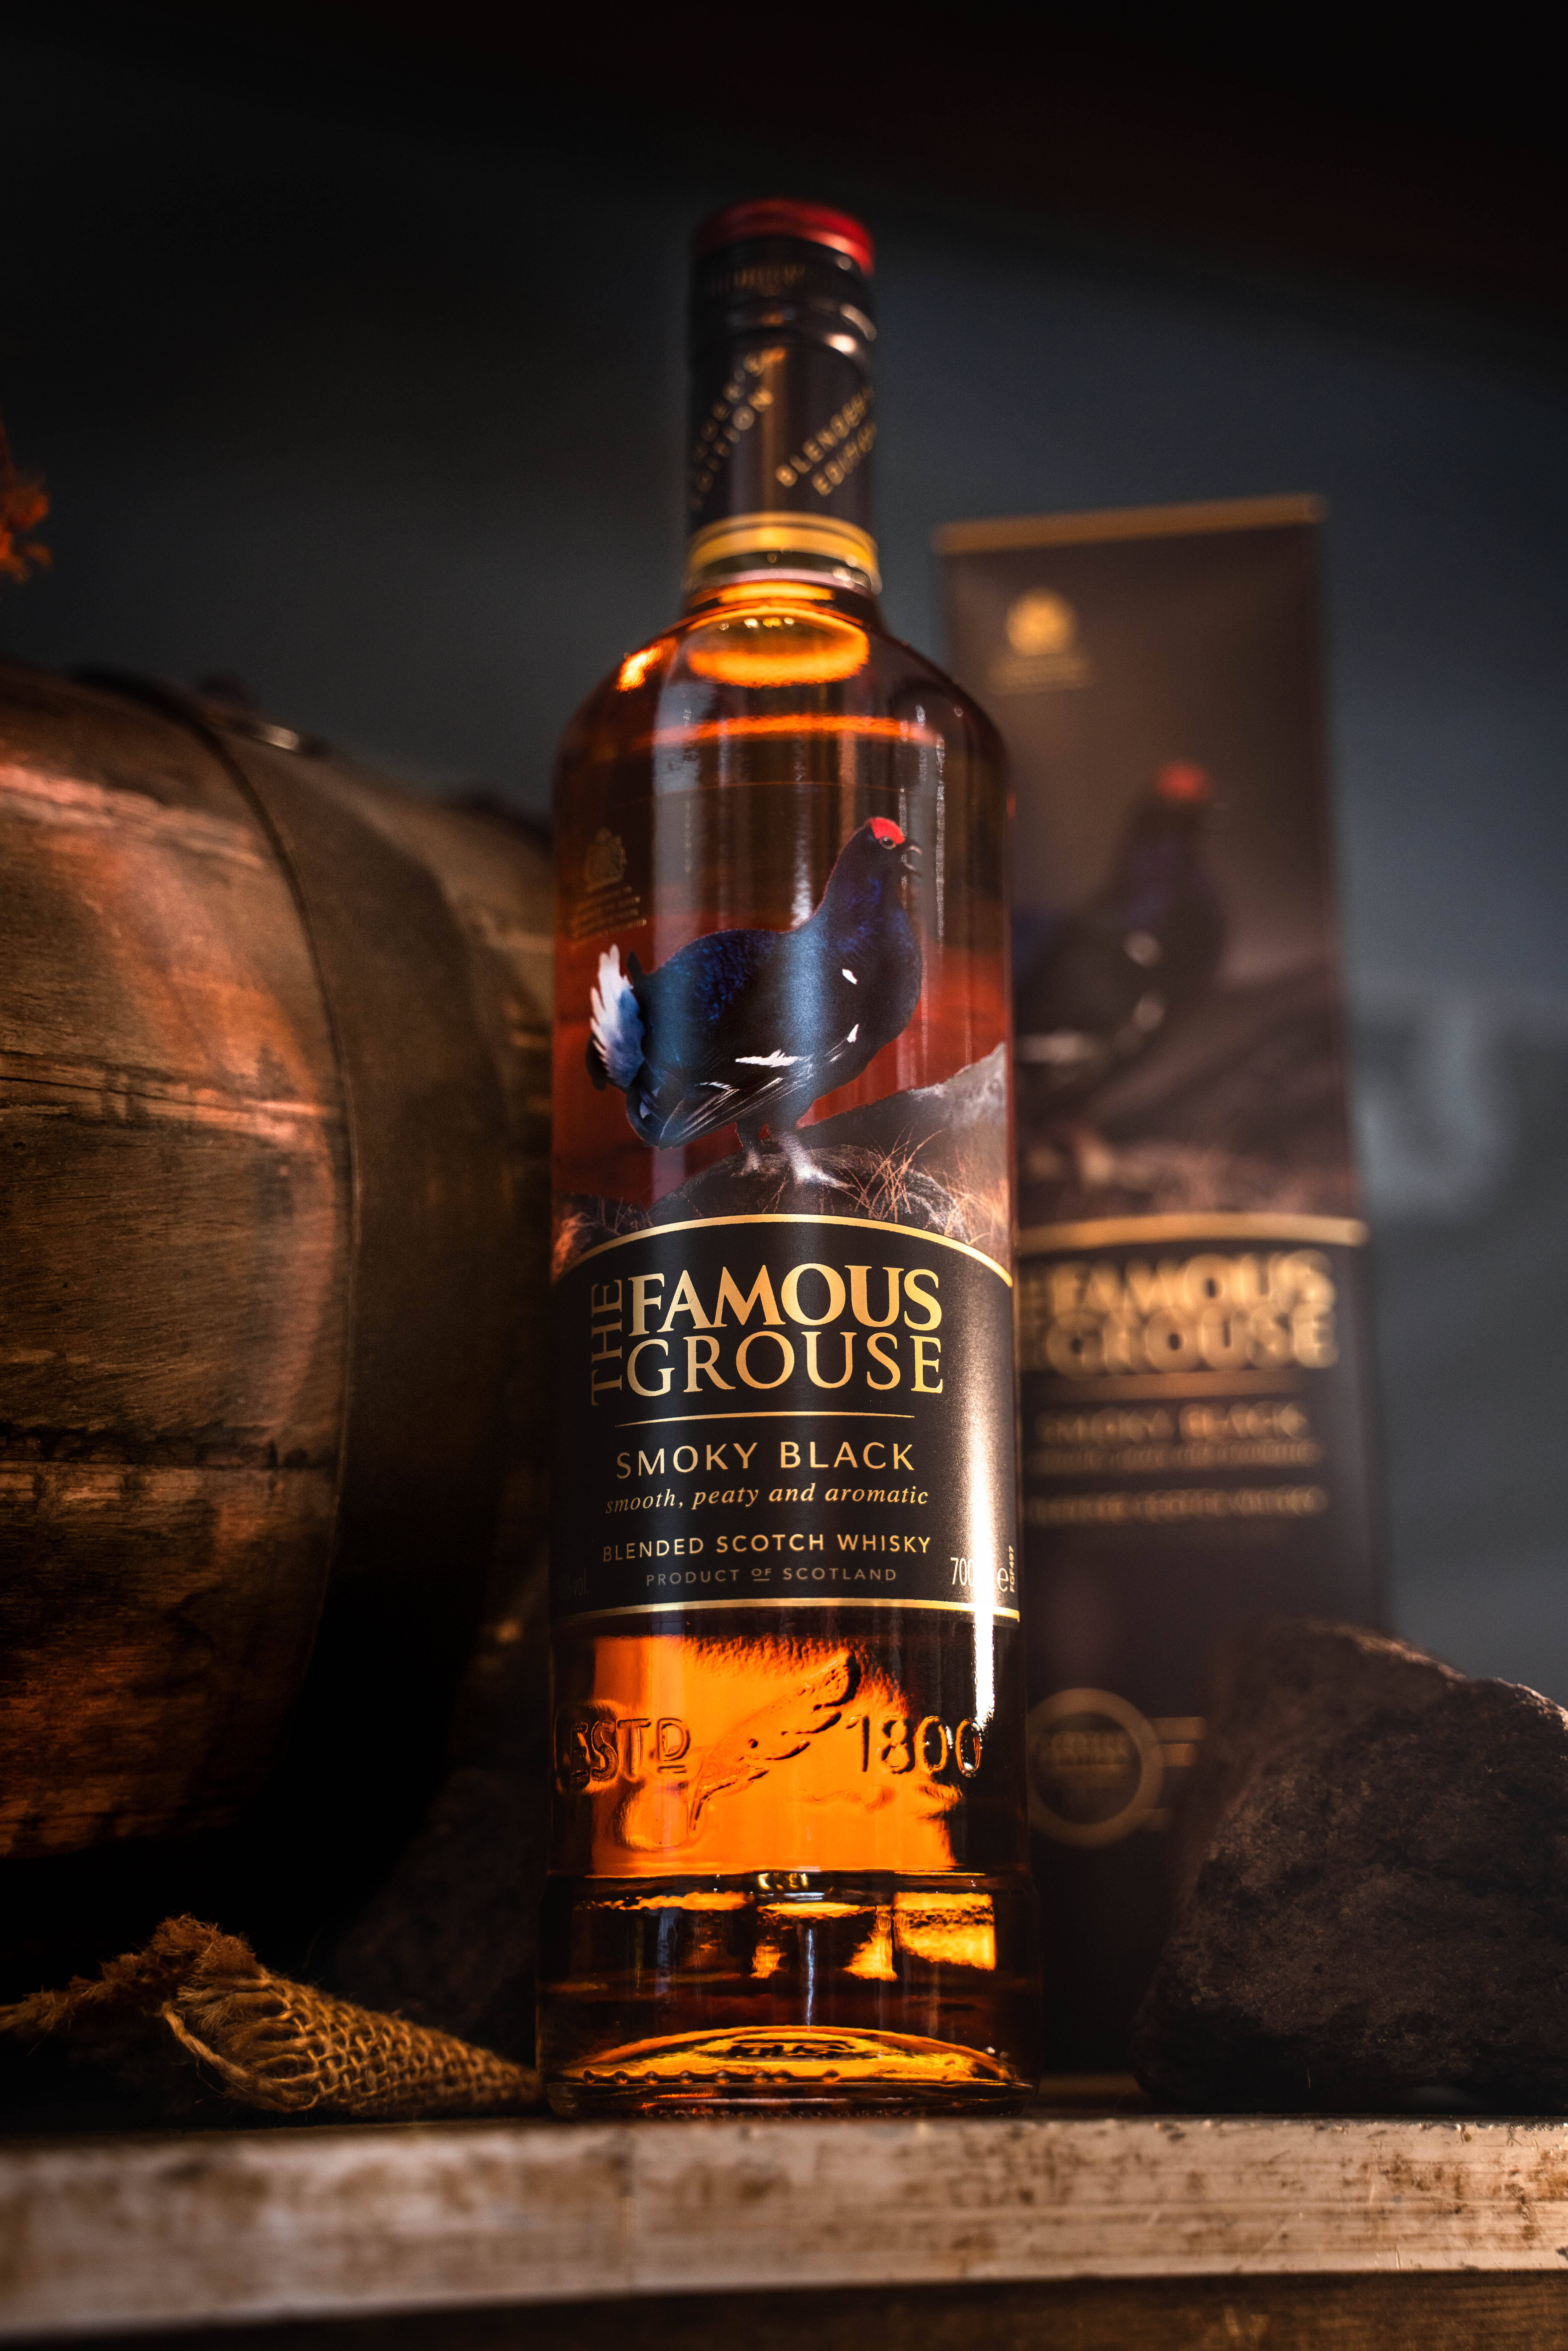 THE FAMOUS GROUSE SMOKY BLACK COCKTAILS